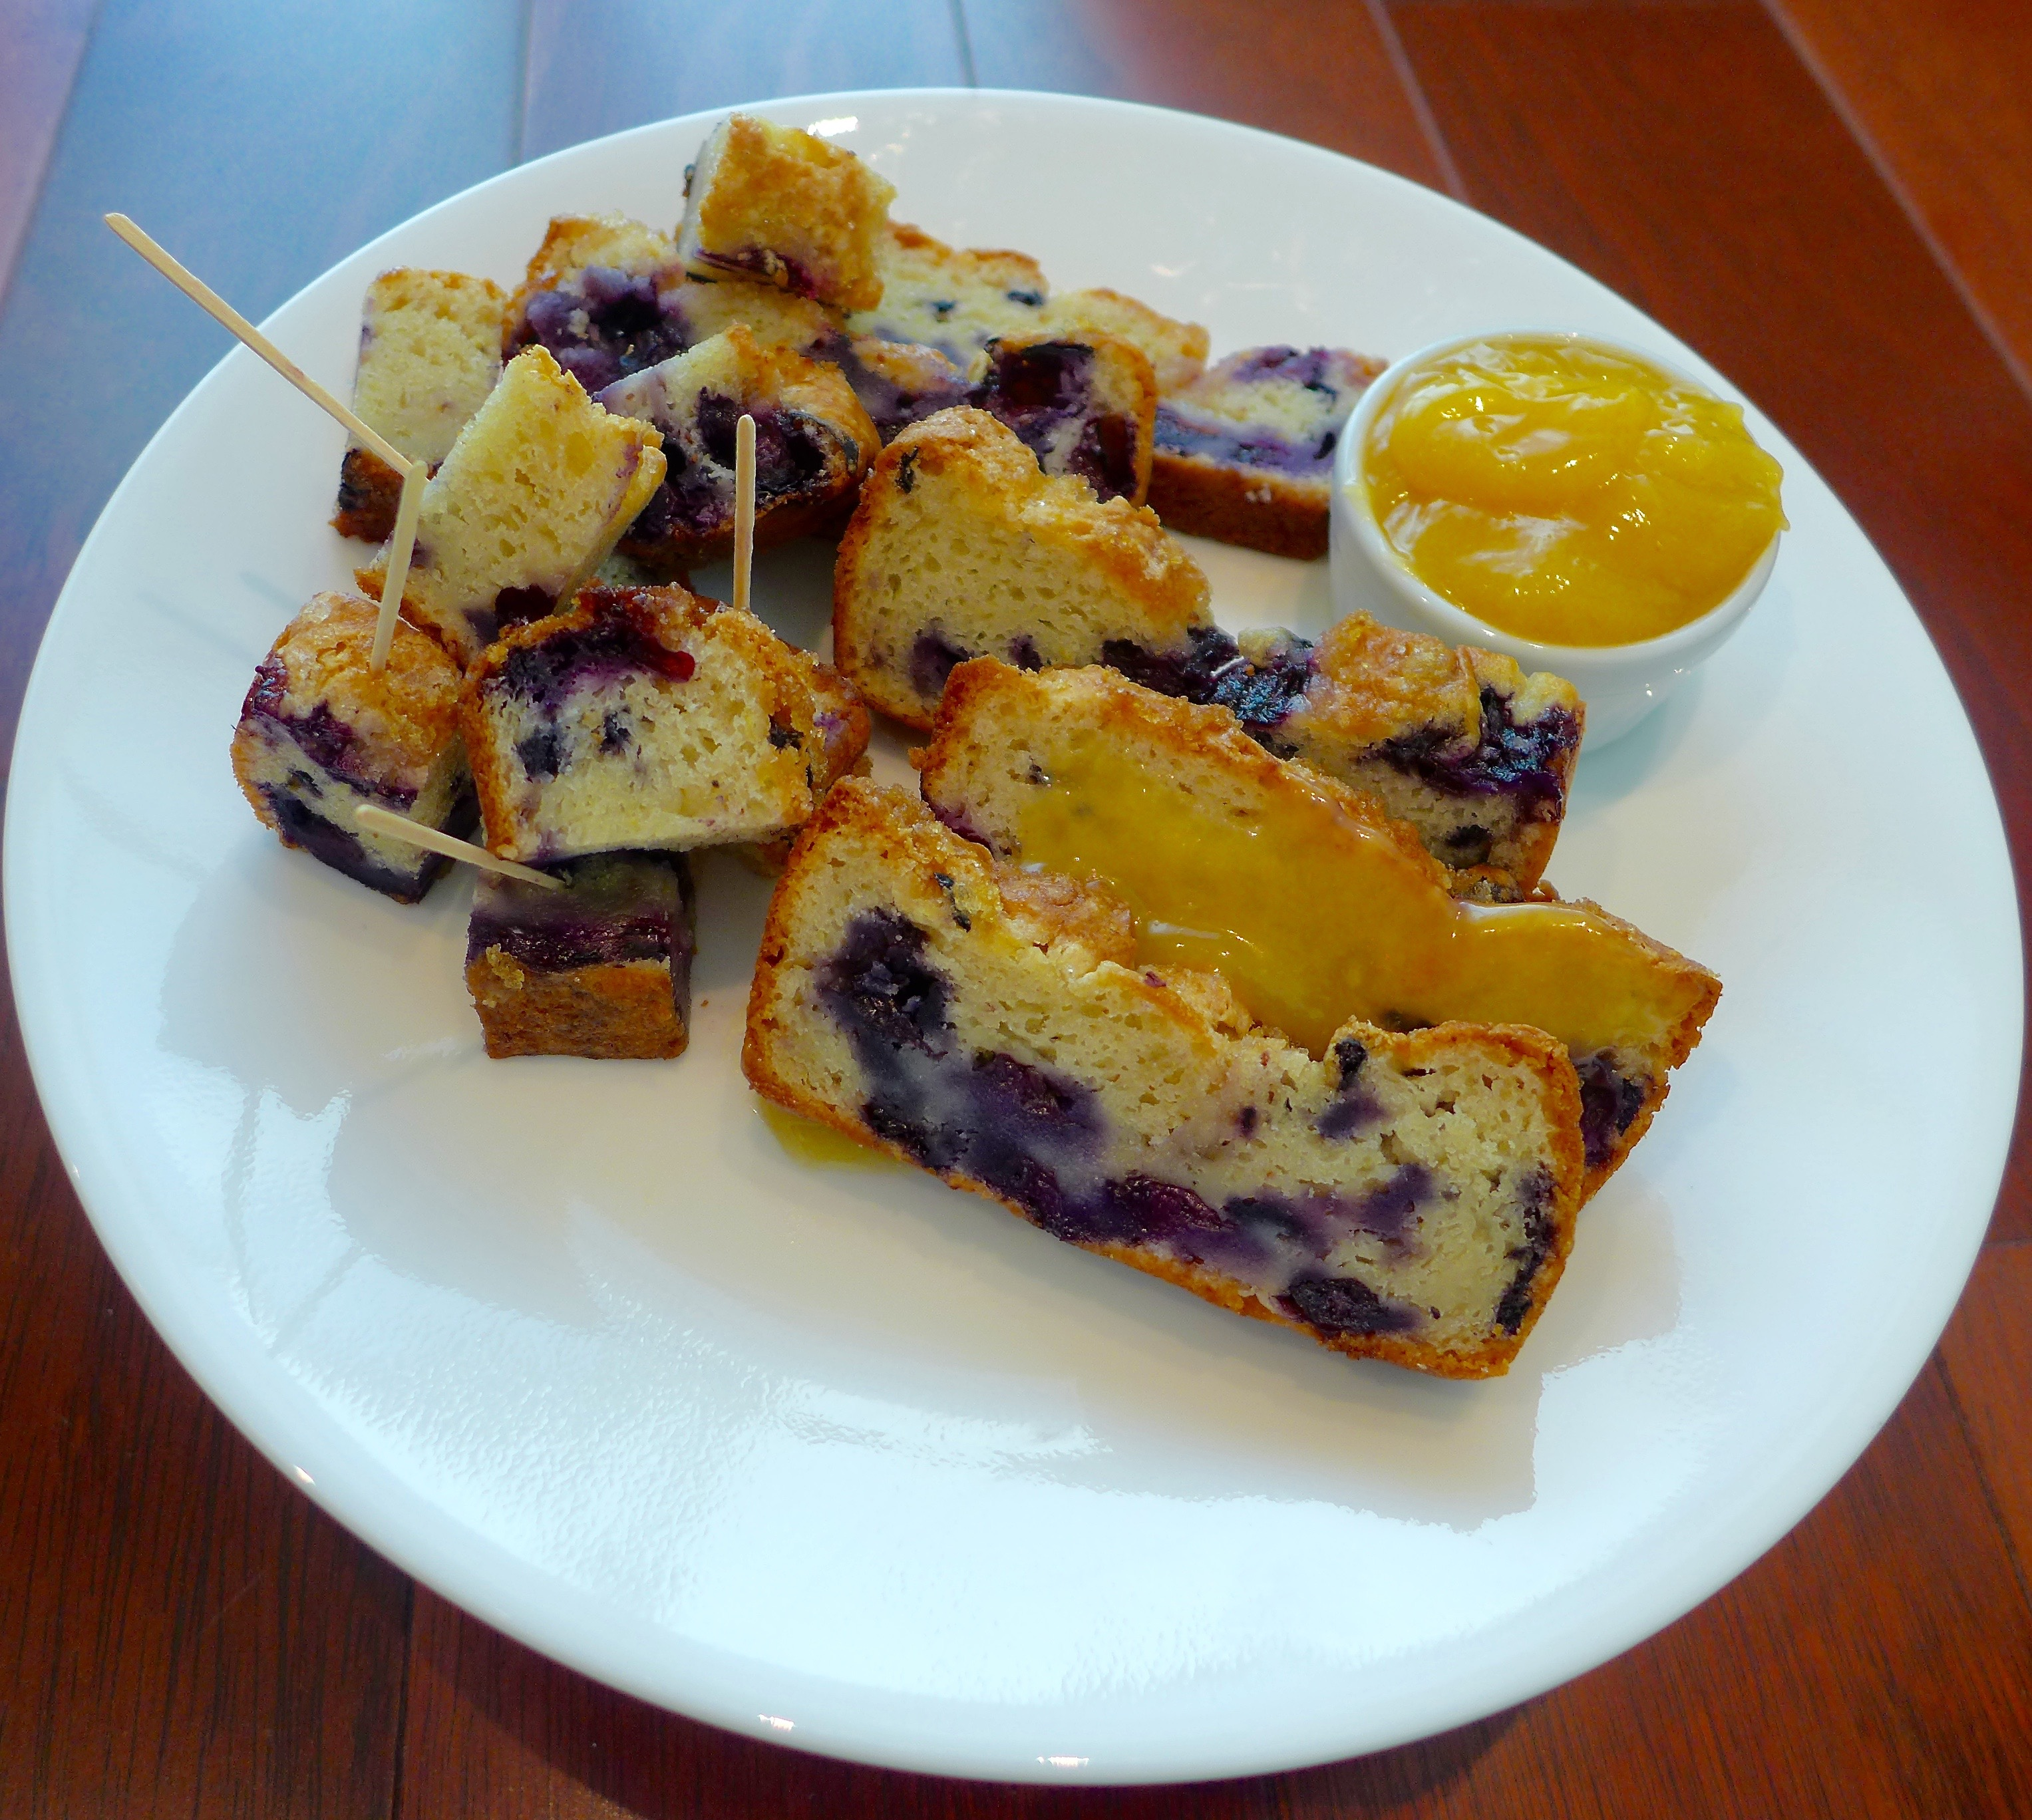 Let's face it: muffins are really little cakes. Use the same batter to make blueberry loaf cake instead. It's especially good with a dab of lemon curd. Cut into slices or cubes and serve with toothpicks.